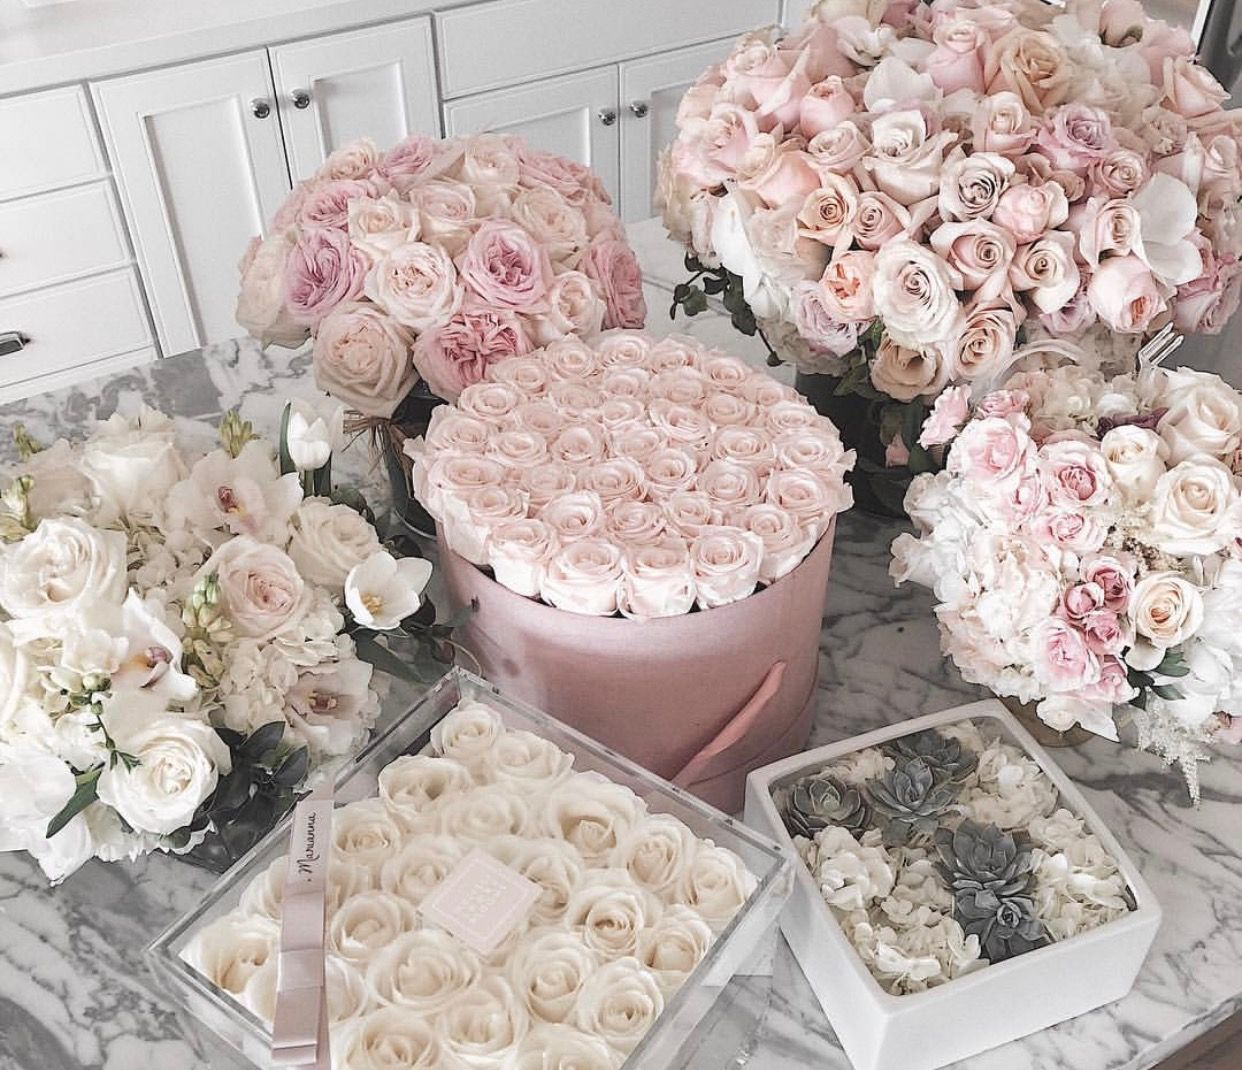 Pin by Cecily Ojeda on Florals Luxury flowers, Bloom